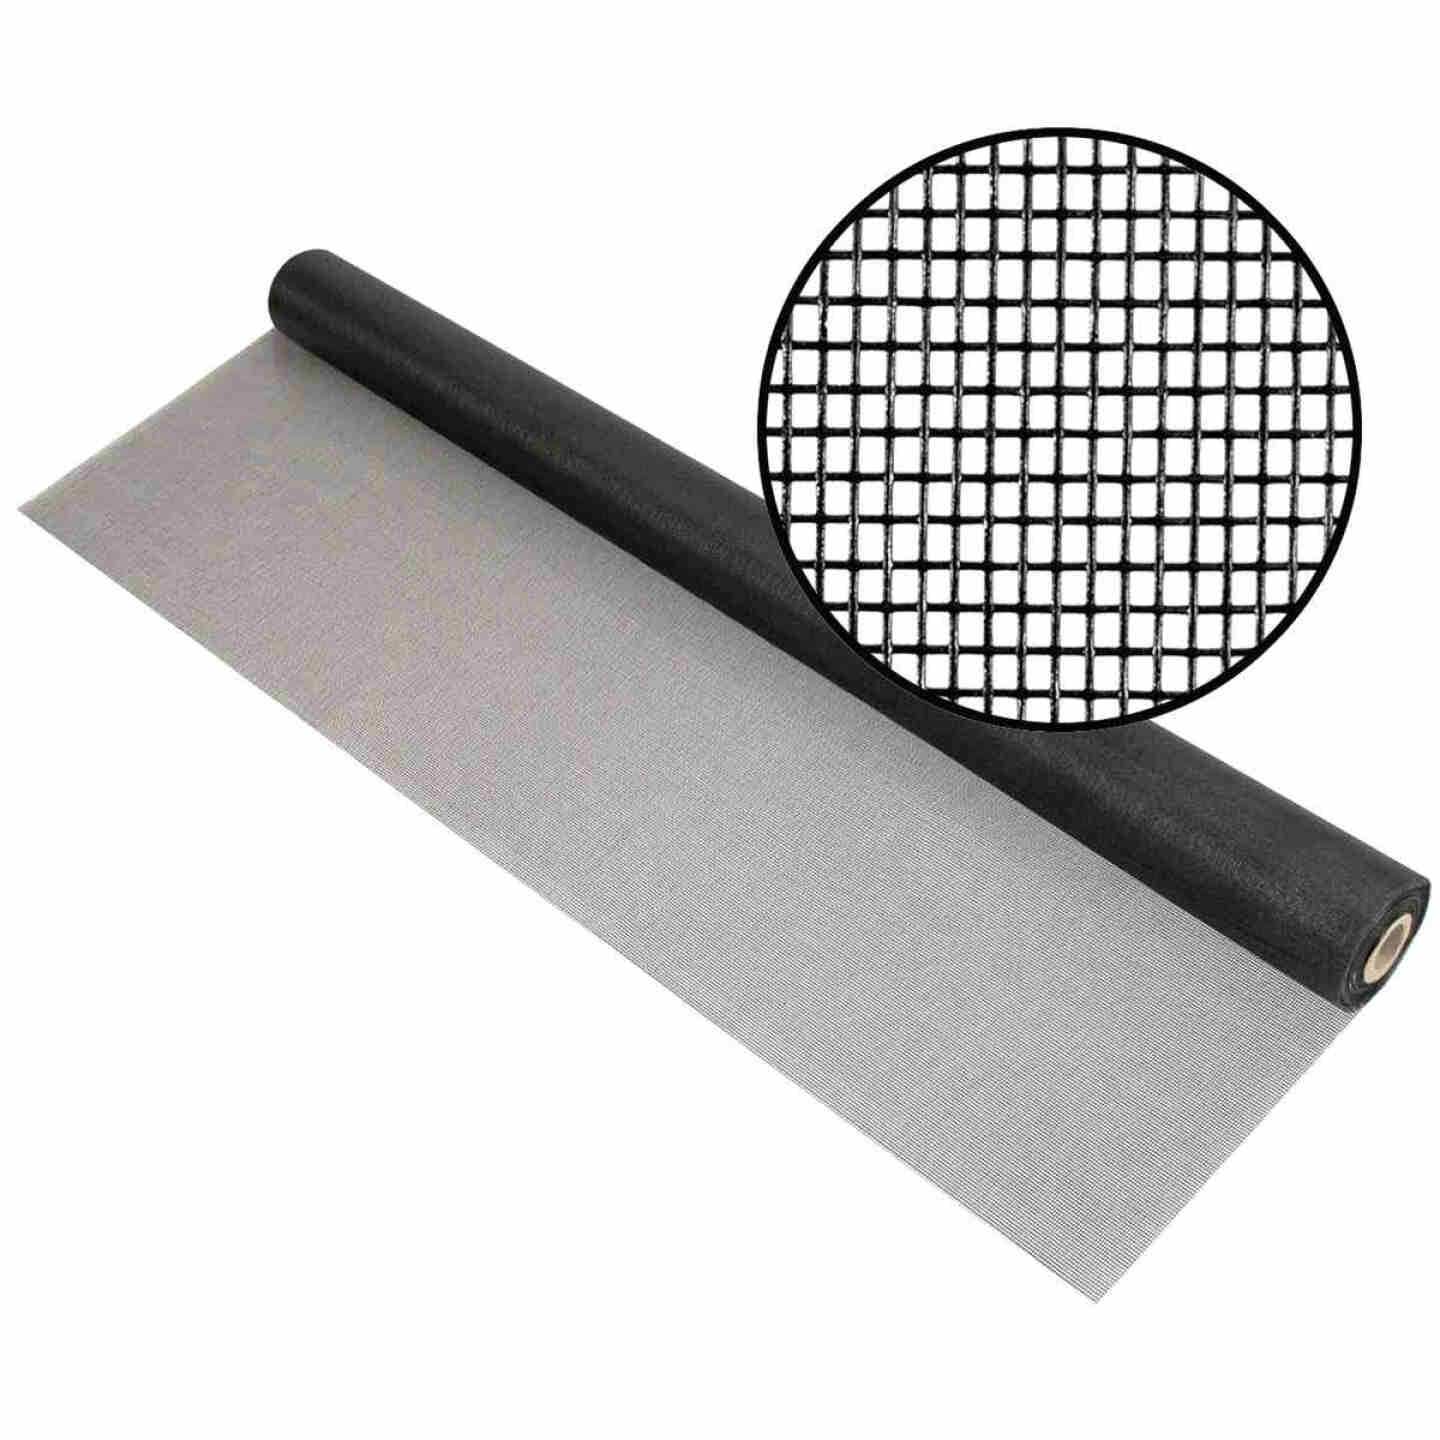 Phifer 72 In. x 100 Ft. Charcoal Fiberglass Mesh Screen Cloth Image 1